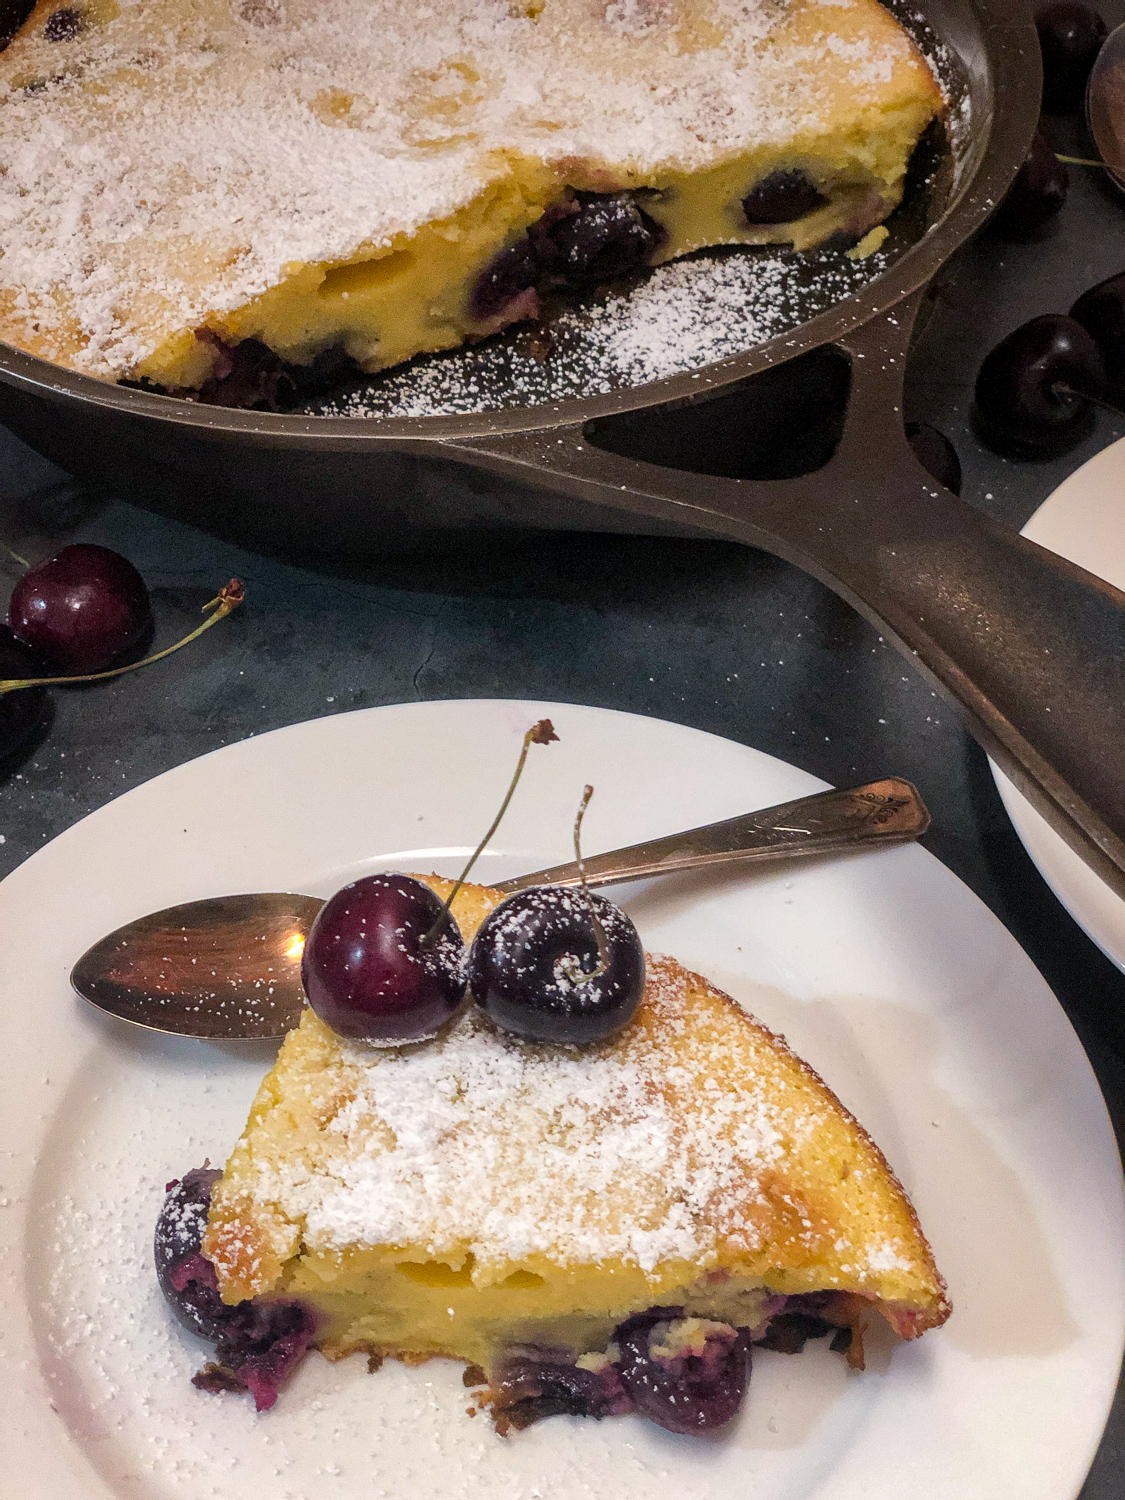 A slice of cherry clafoutis on a white plate and the remaining dessert still in the skillet.